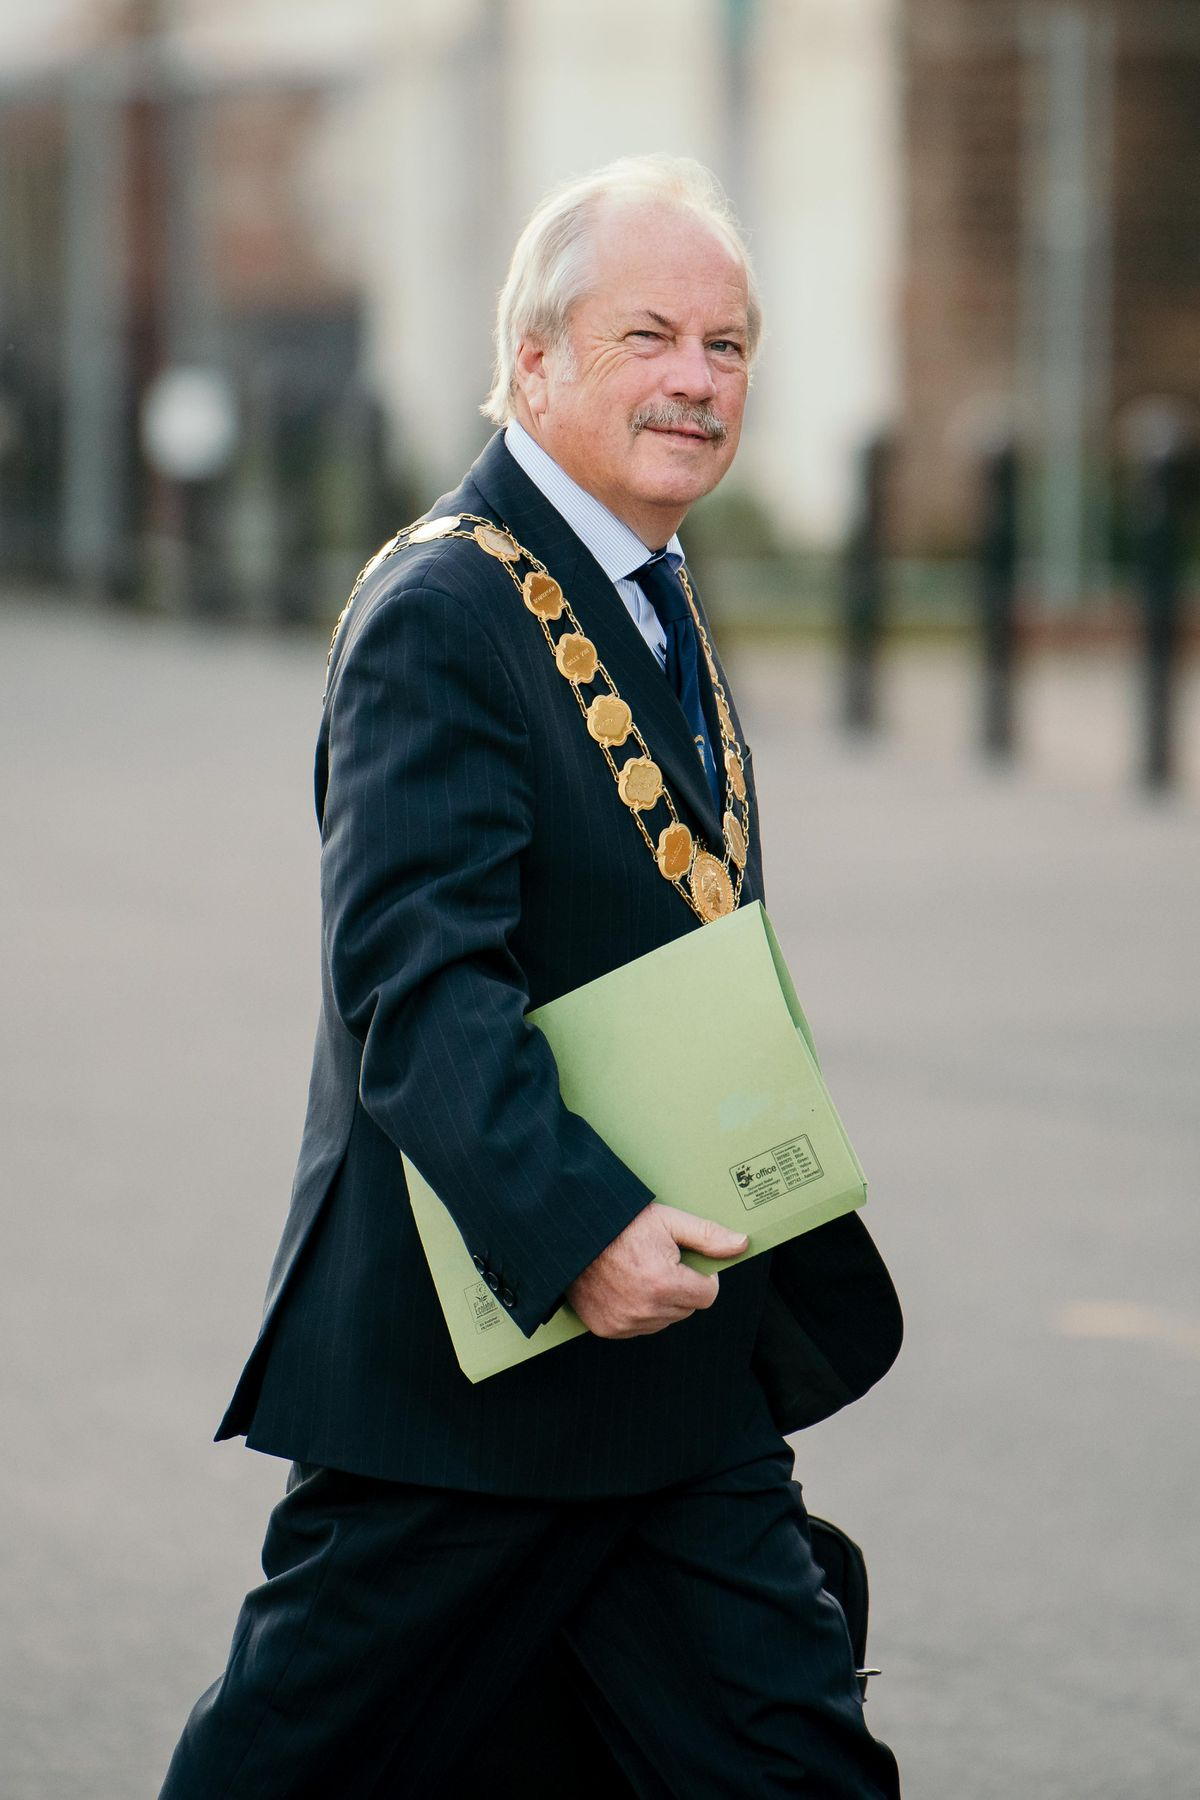 Mayor of Shrewsbury, Councillor Peter Nutting arrives at the meeting